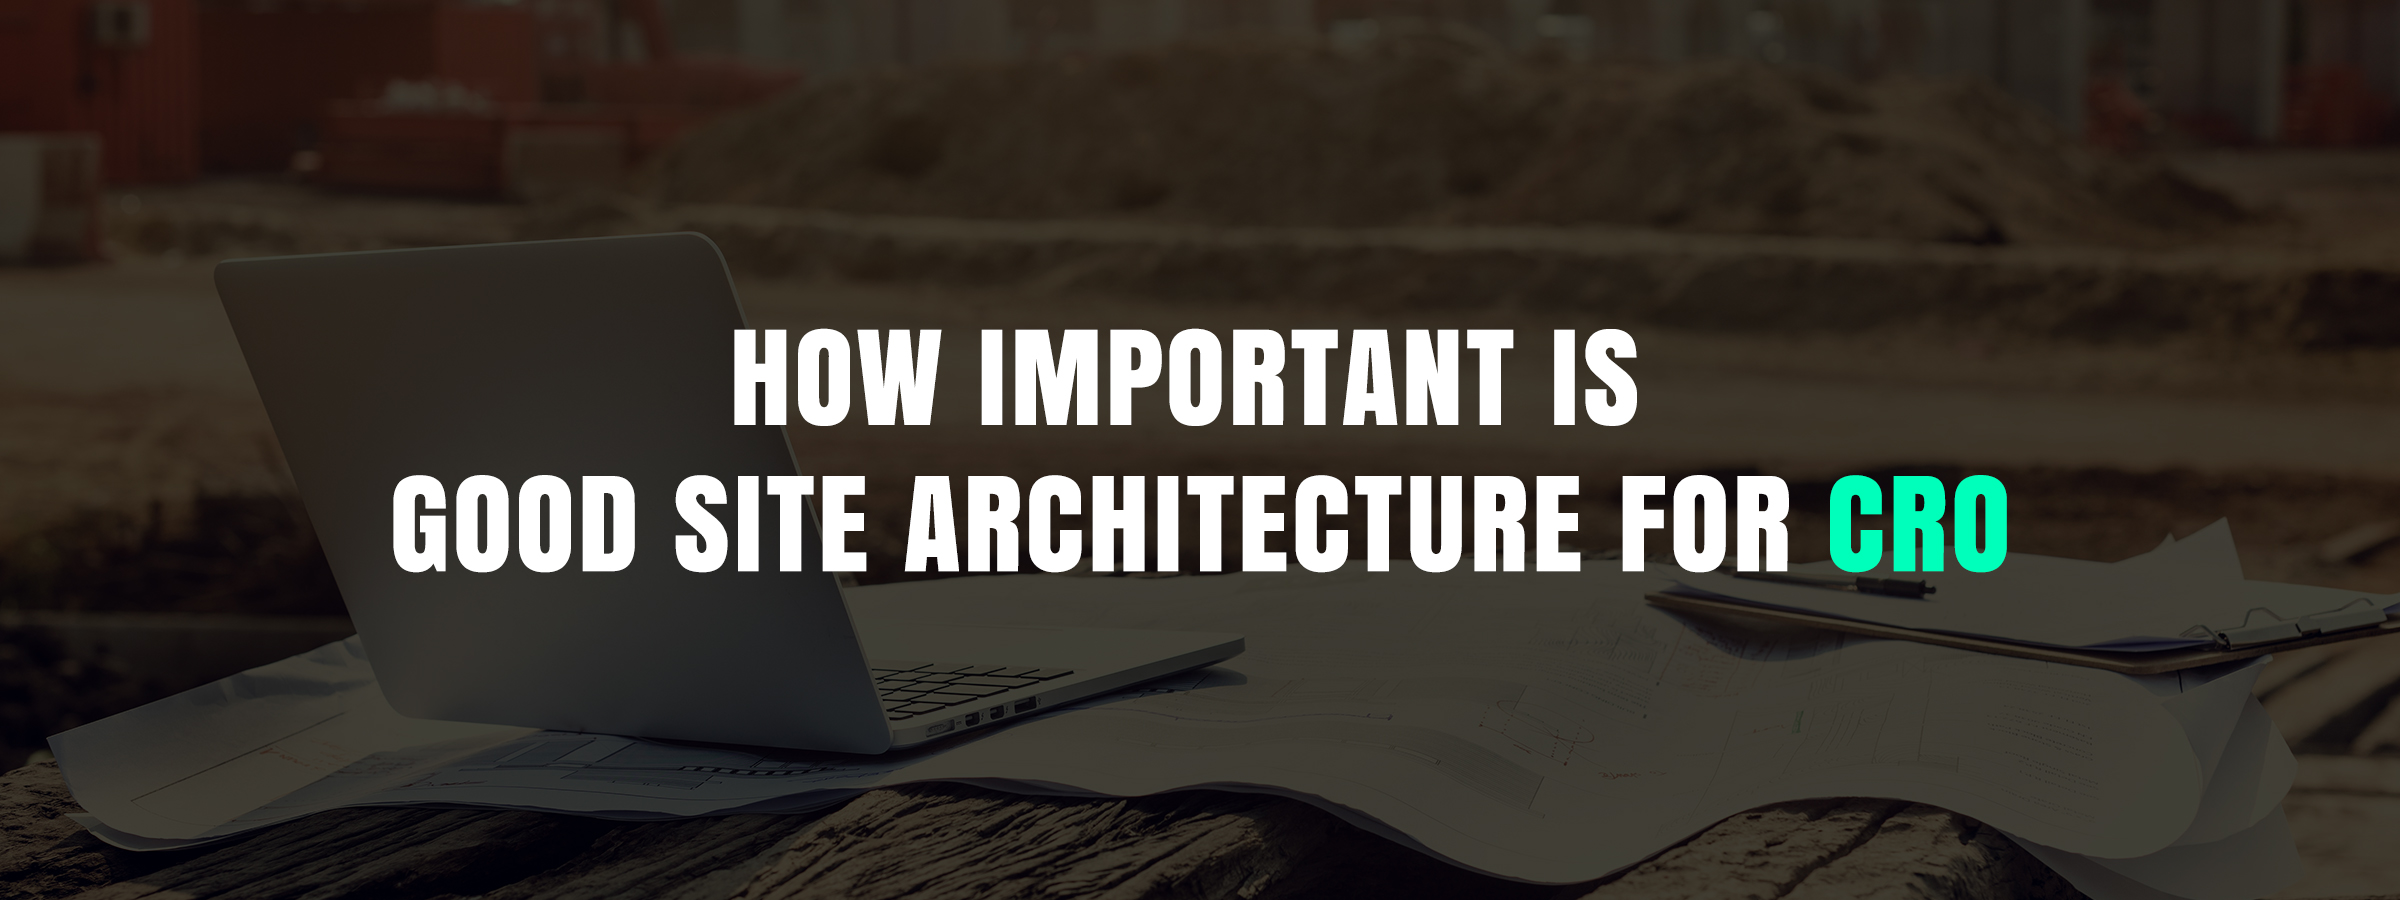 How Important is Good Site Architecture For CRO